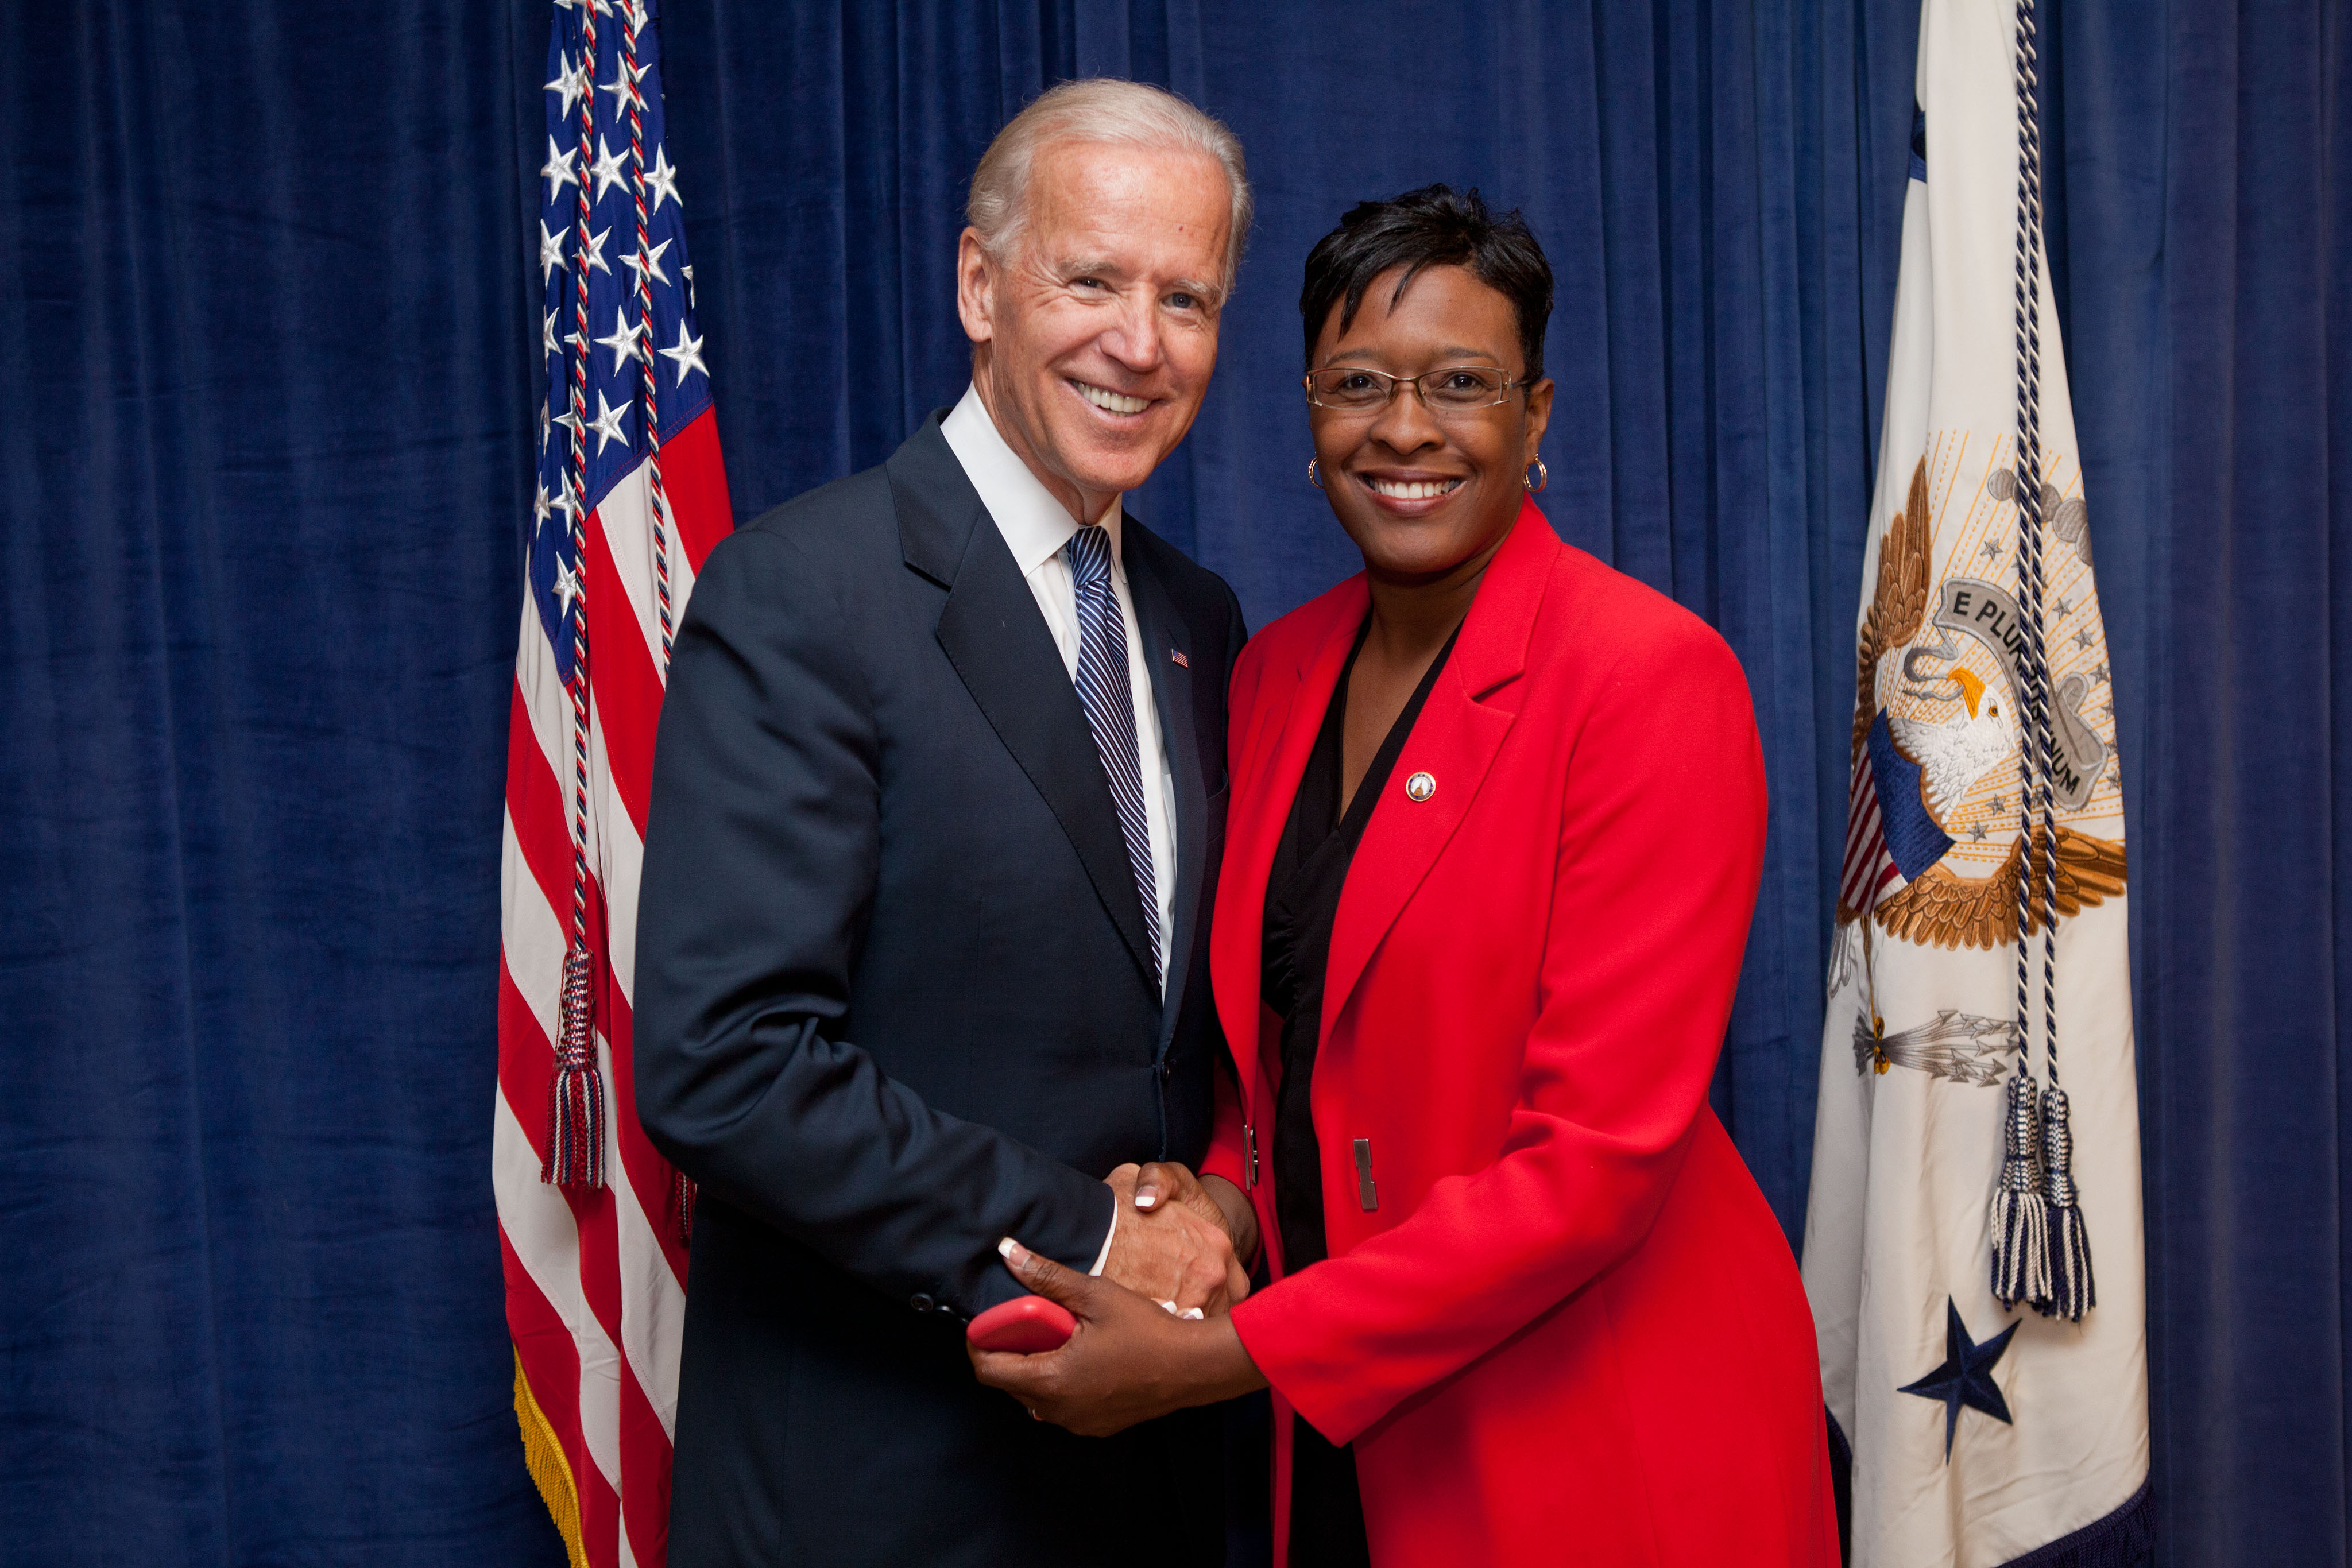 Rep. Waites and Vice President Joe Biden